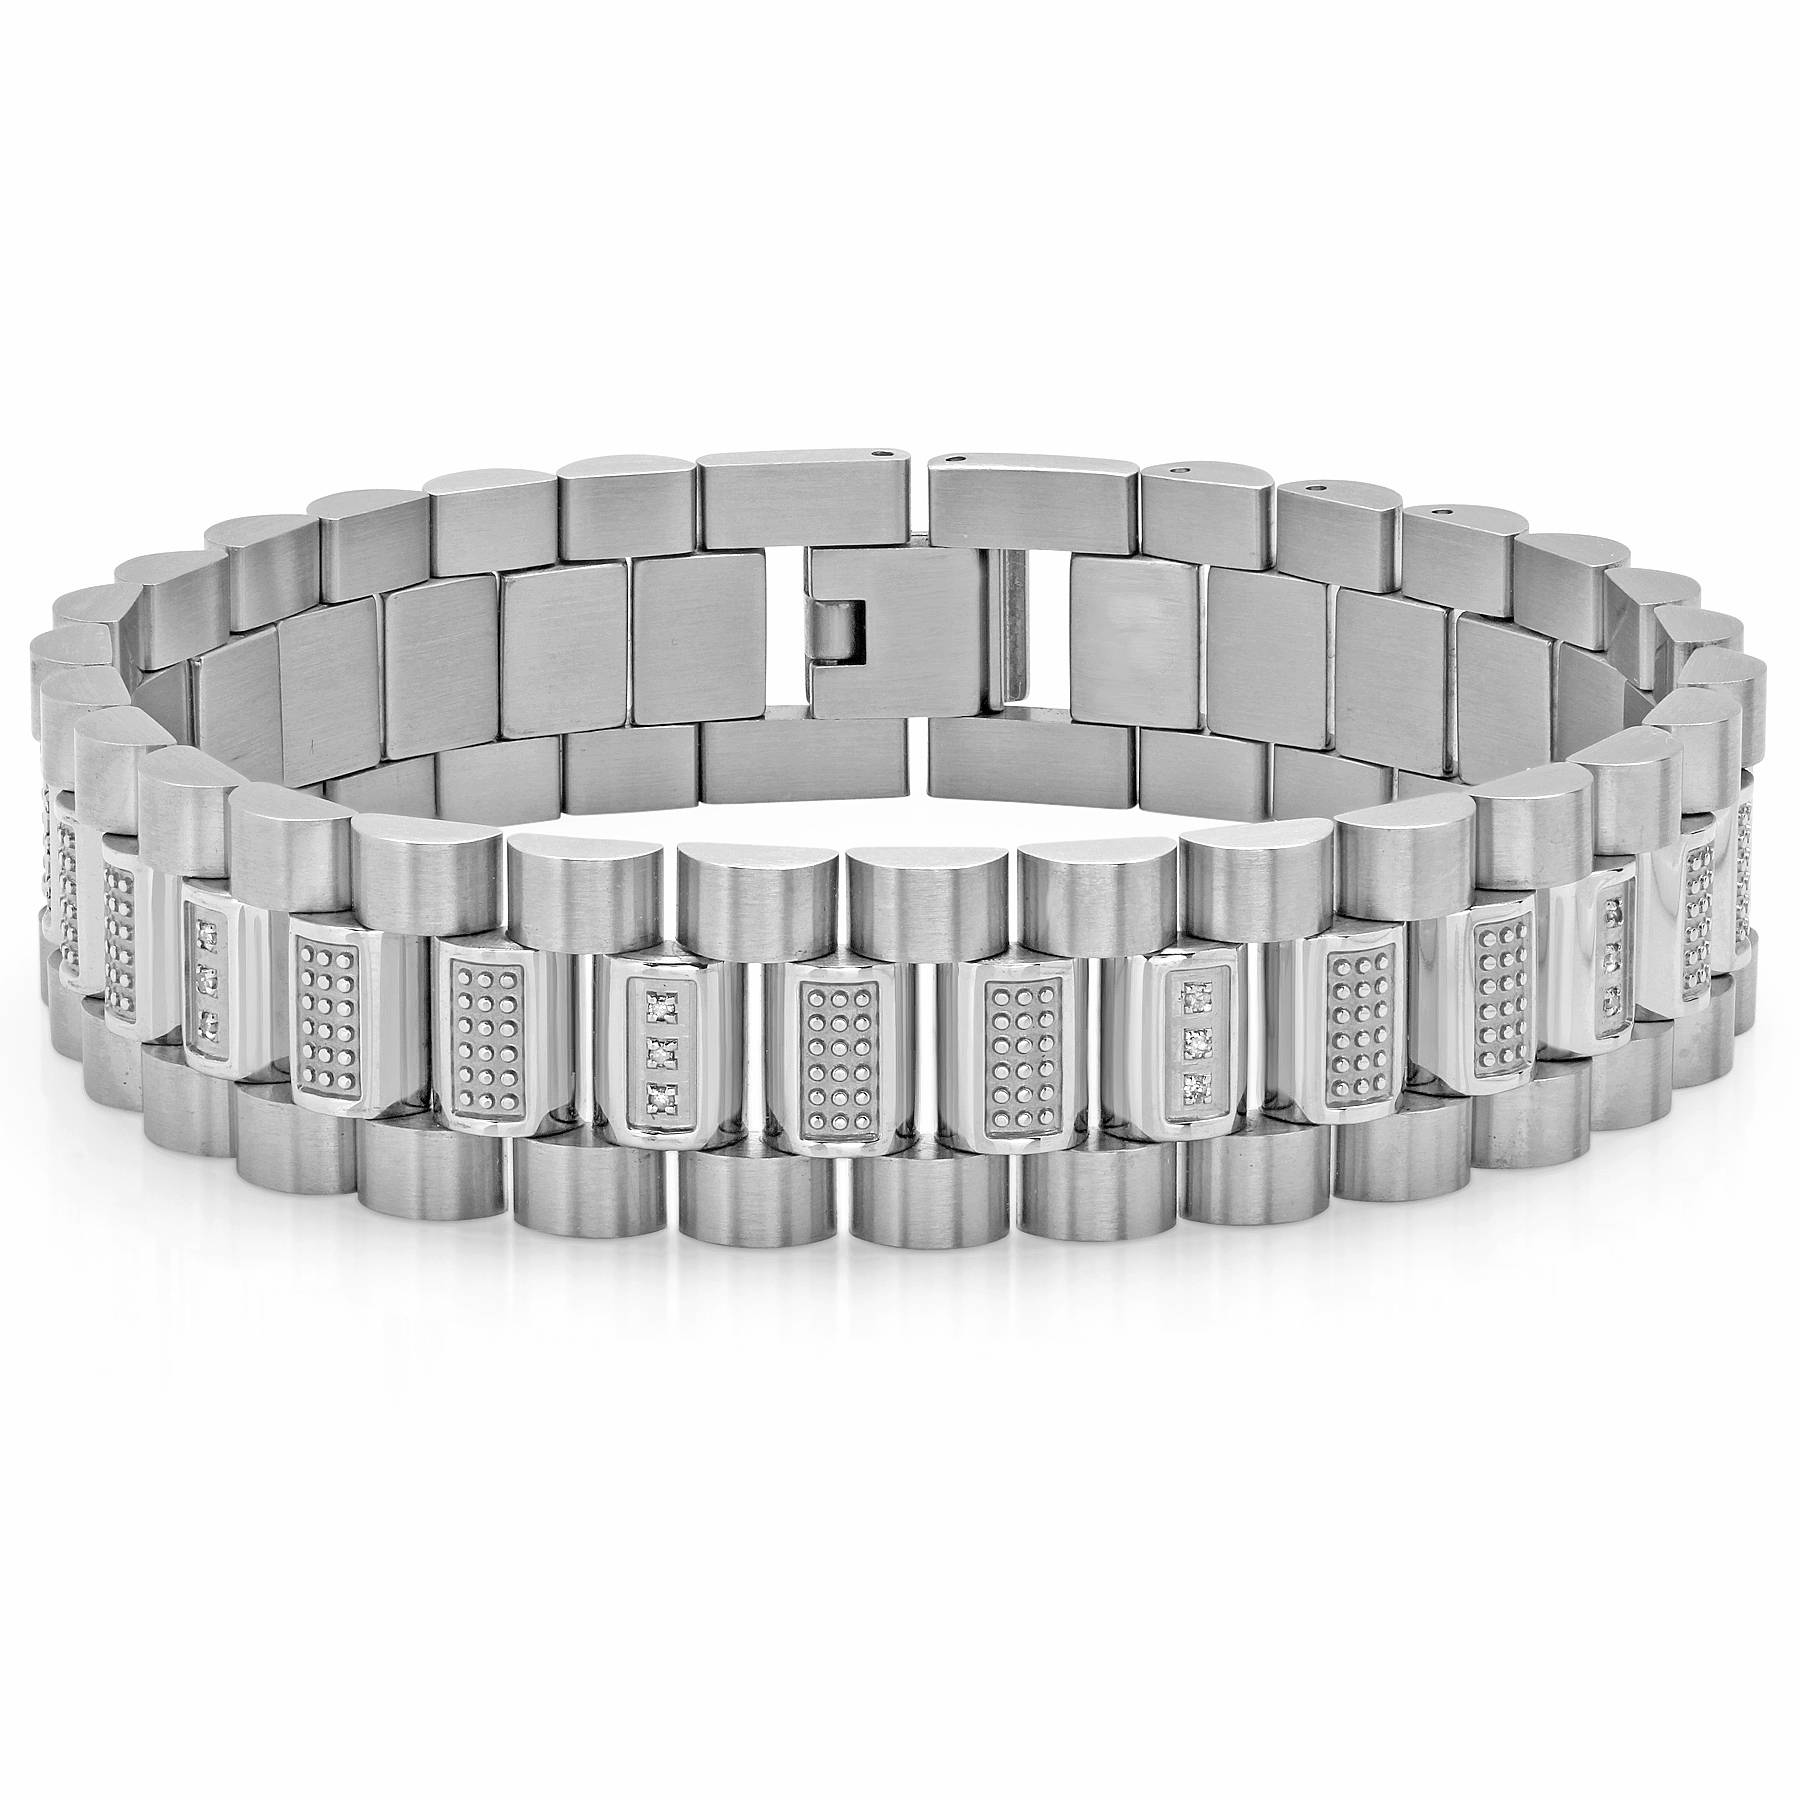 "Men's Stainless Steel .25 White Diamond Rolex Style Mens Clarence Bracelet, 8.5"" by Steel Nation Jewelry"